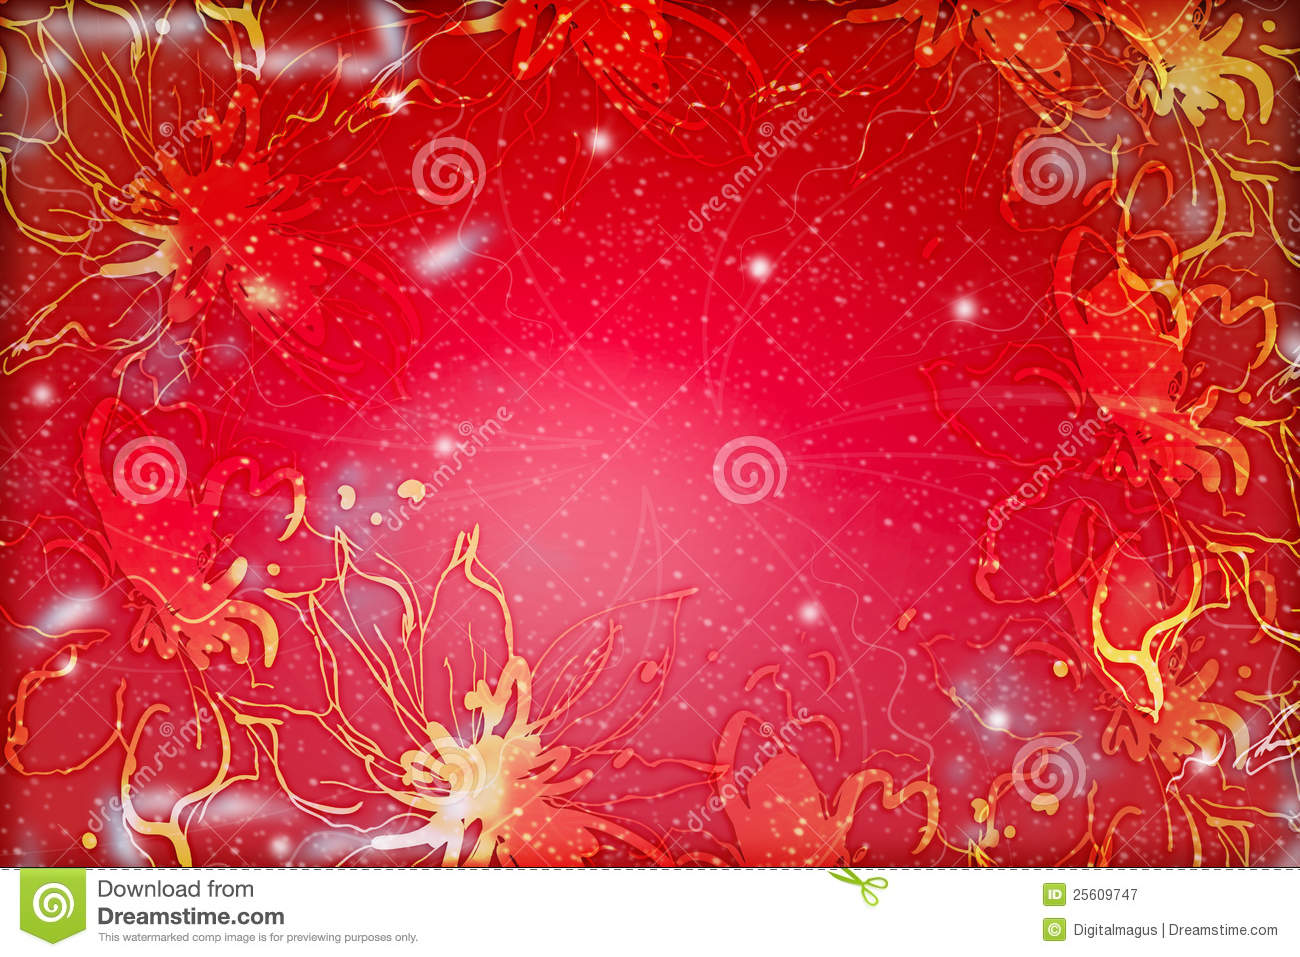 Red Abstract Floral Design